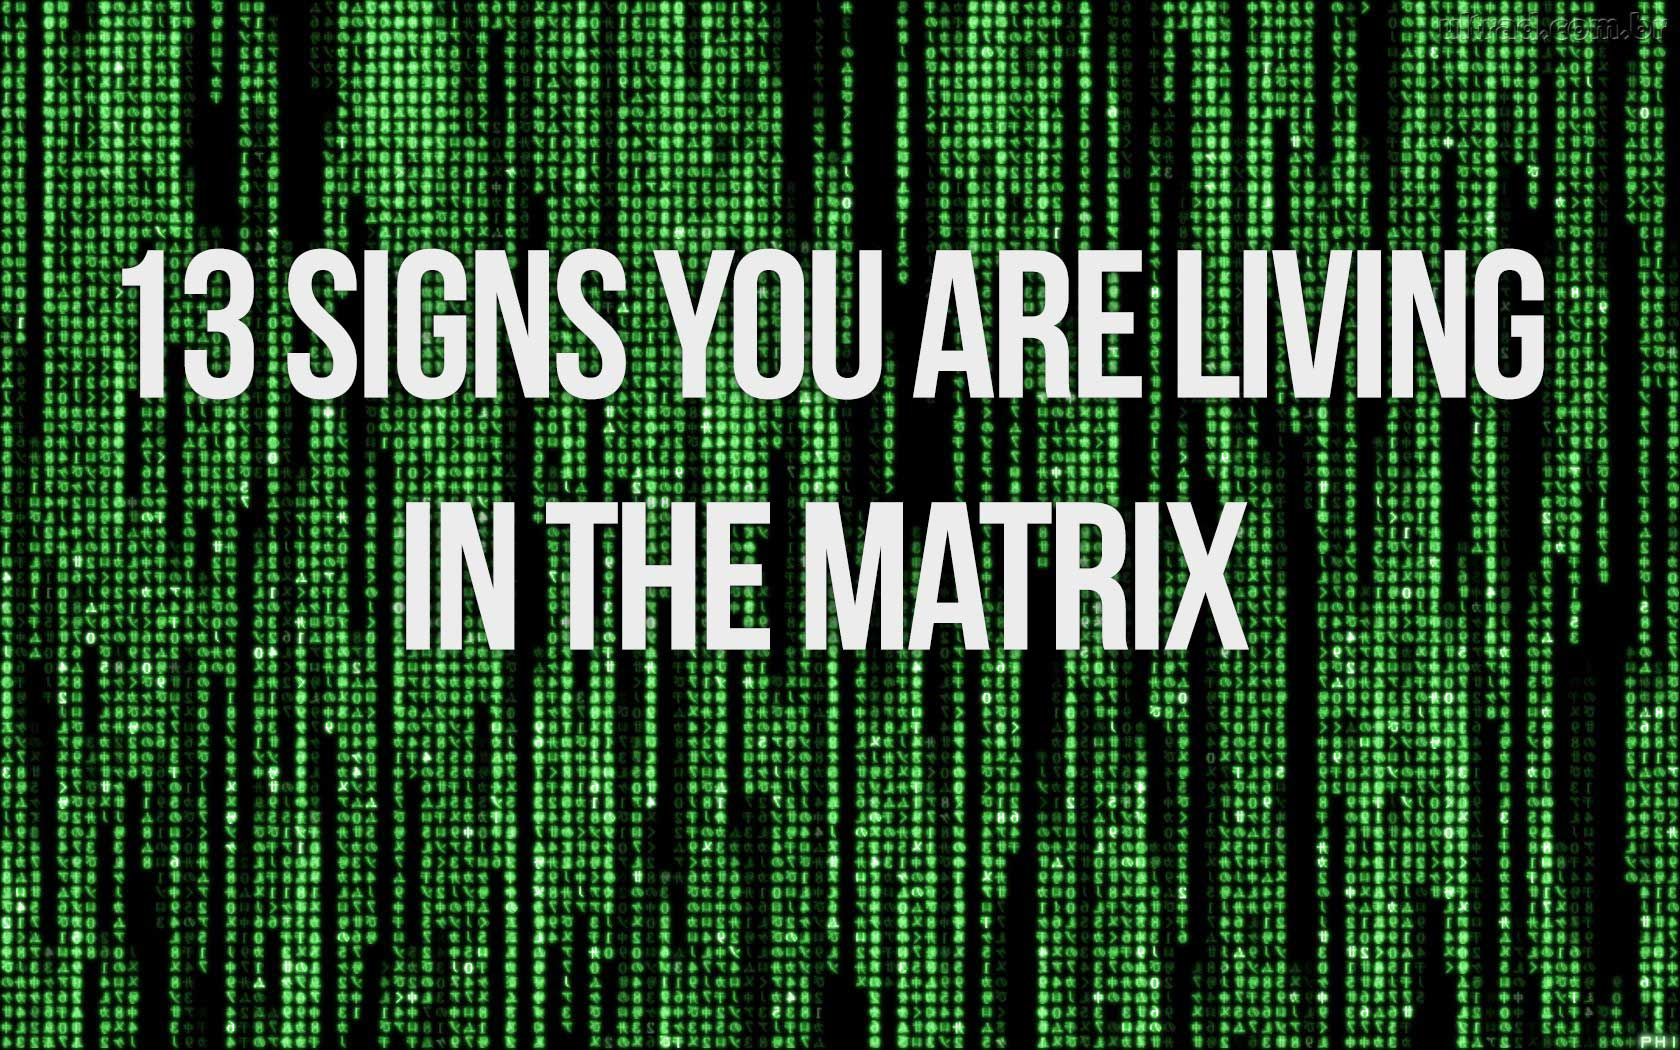 13 signs you are living in the Matrix